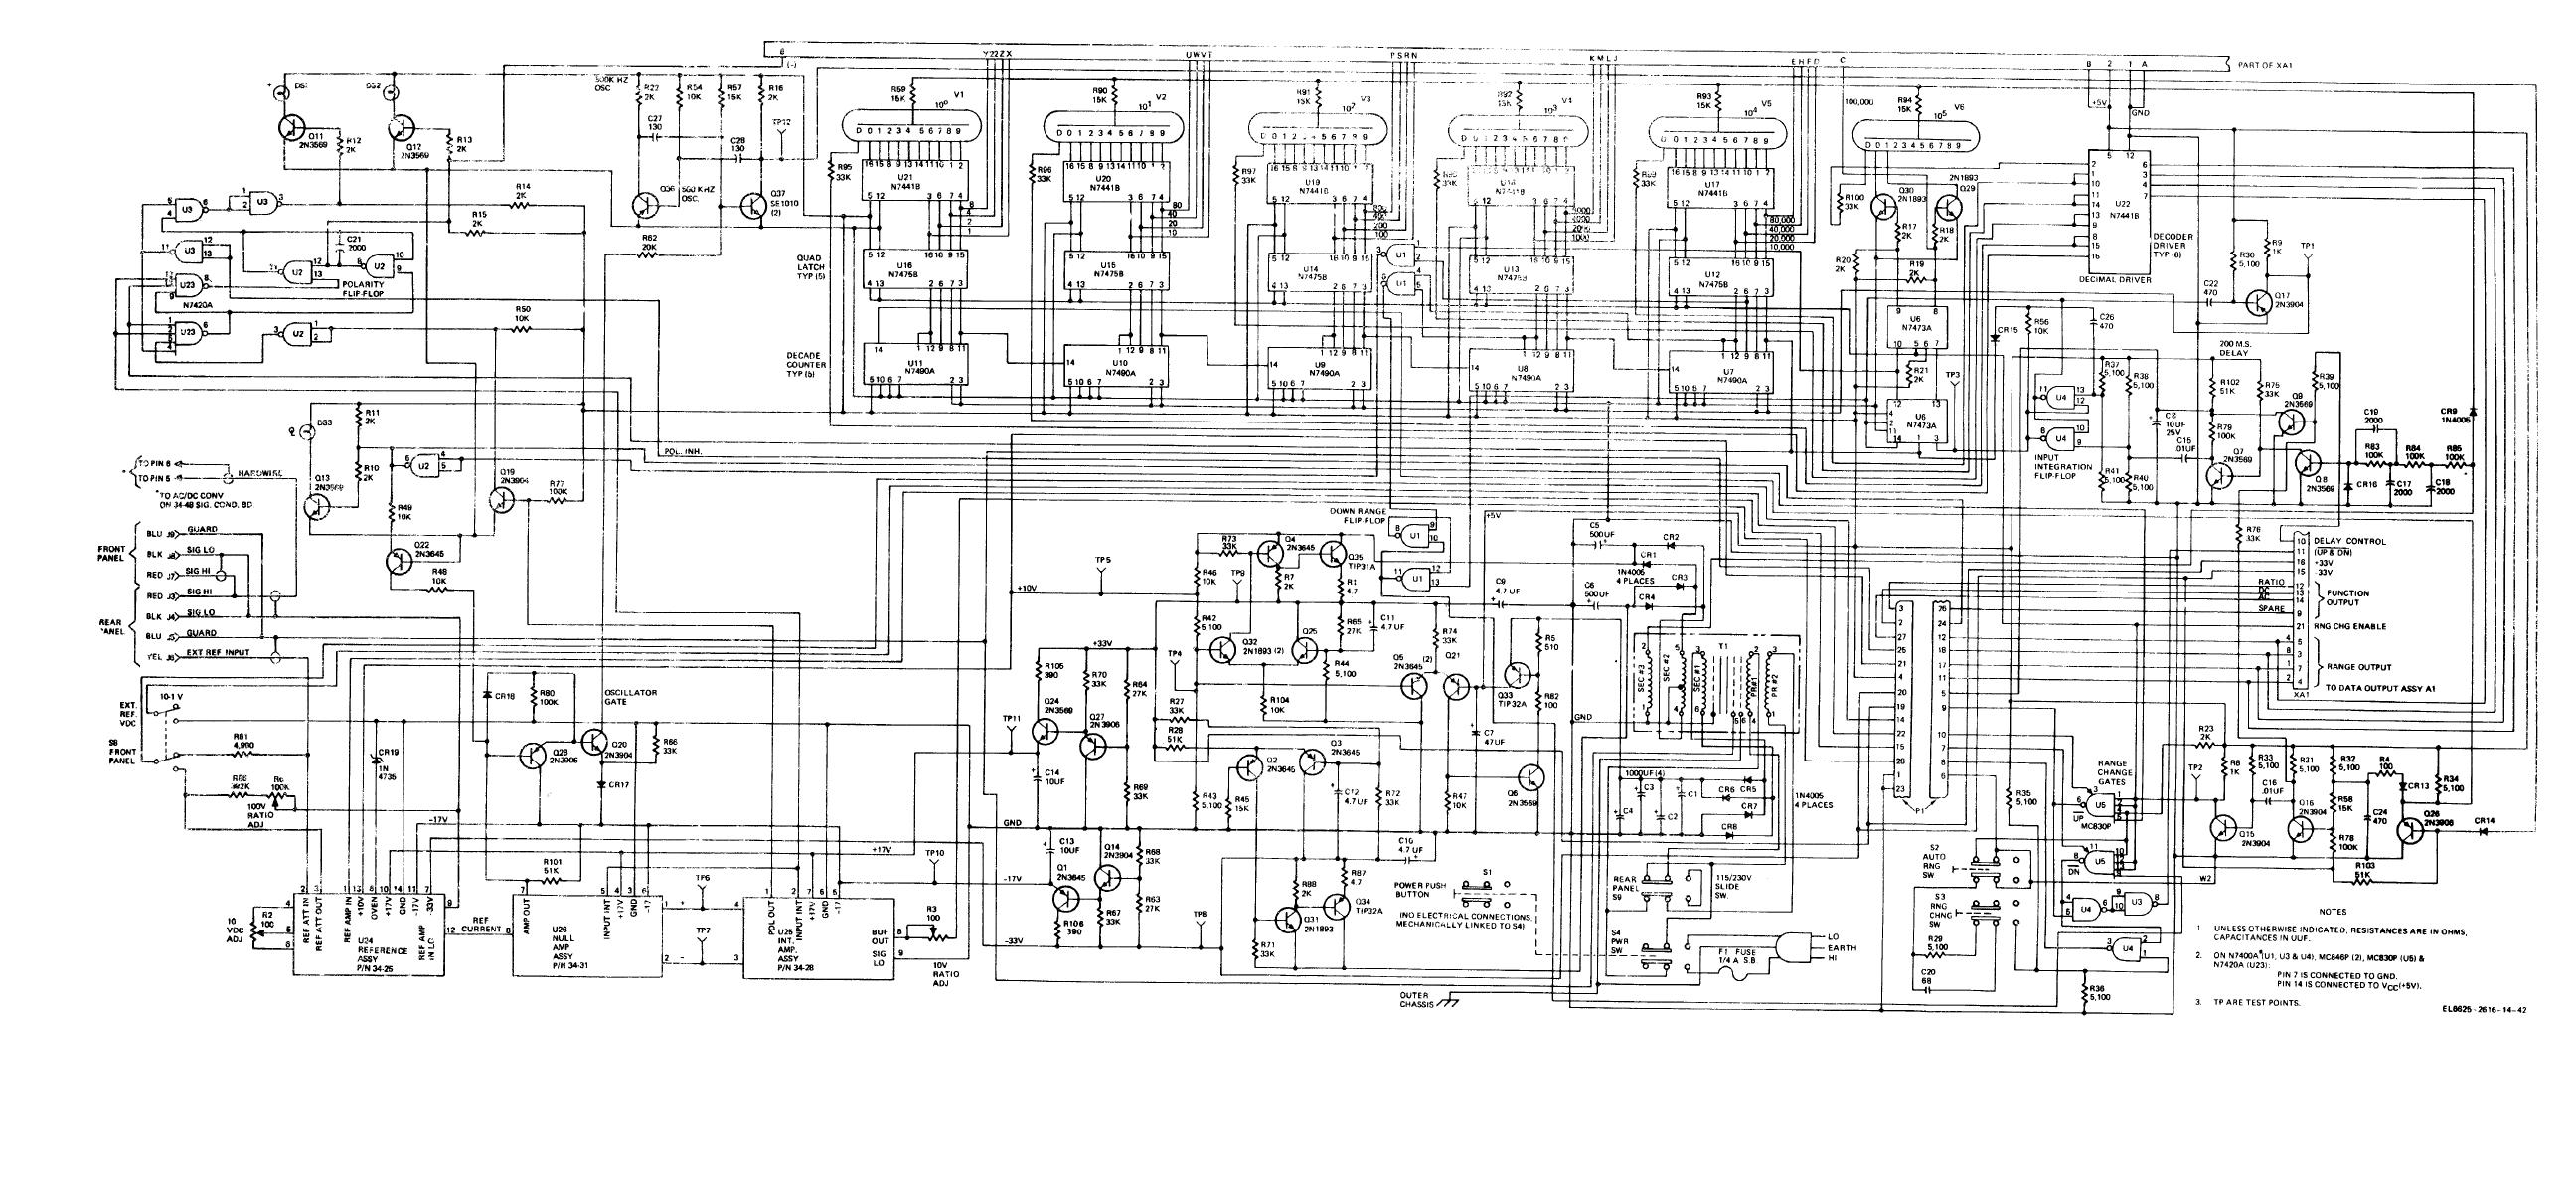 TM 11 6625 2616 140083im figure 9 4 main board assembly, schematic diagram schematic diagrams at gsmx.co